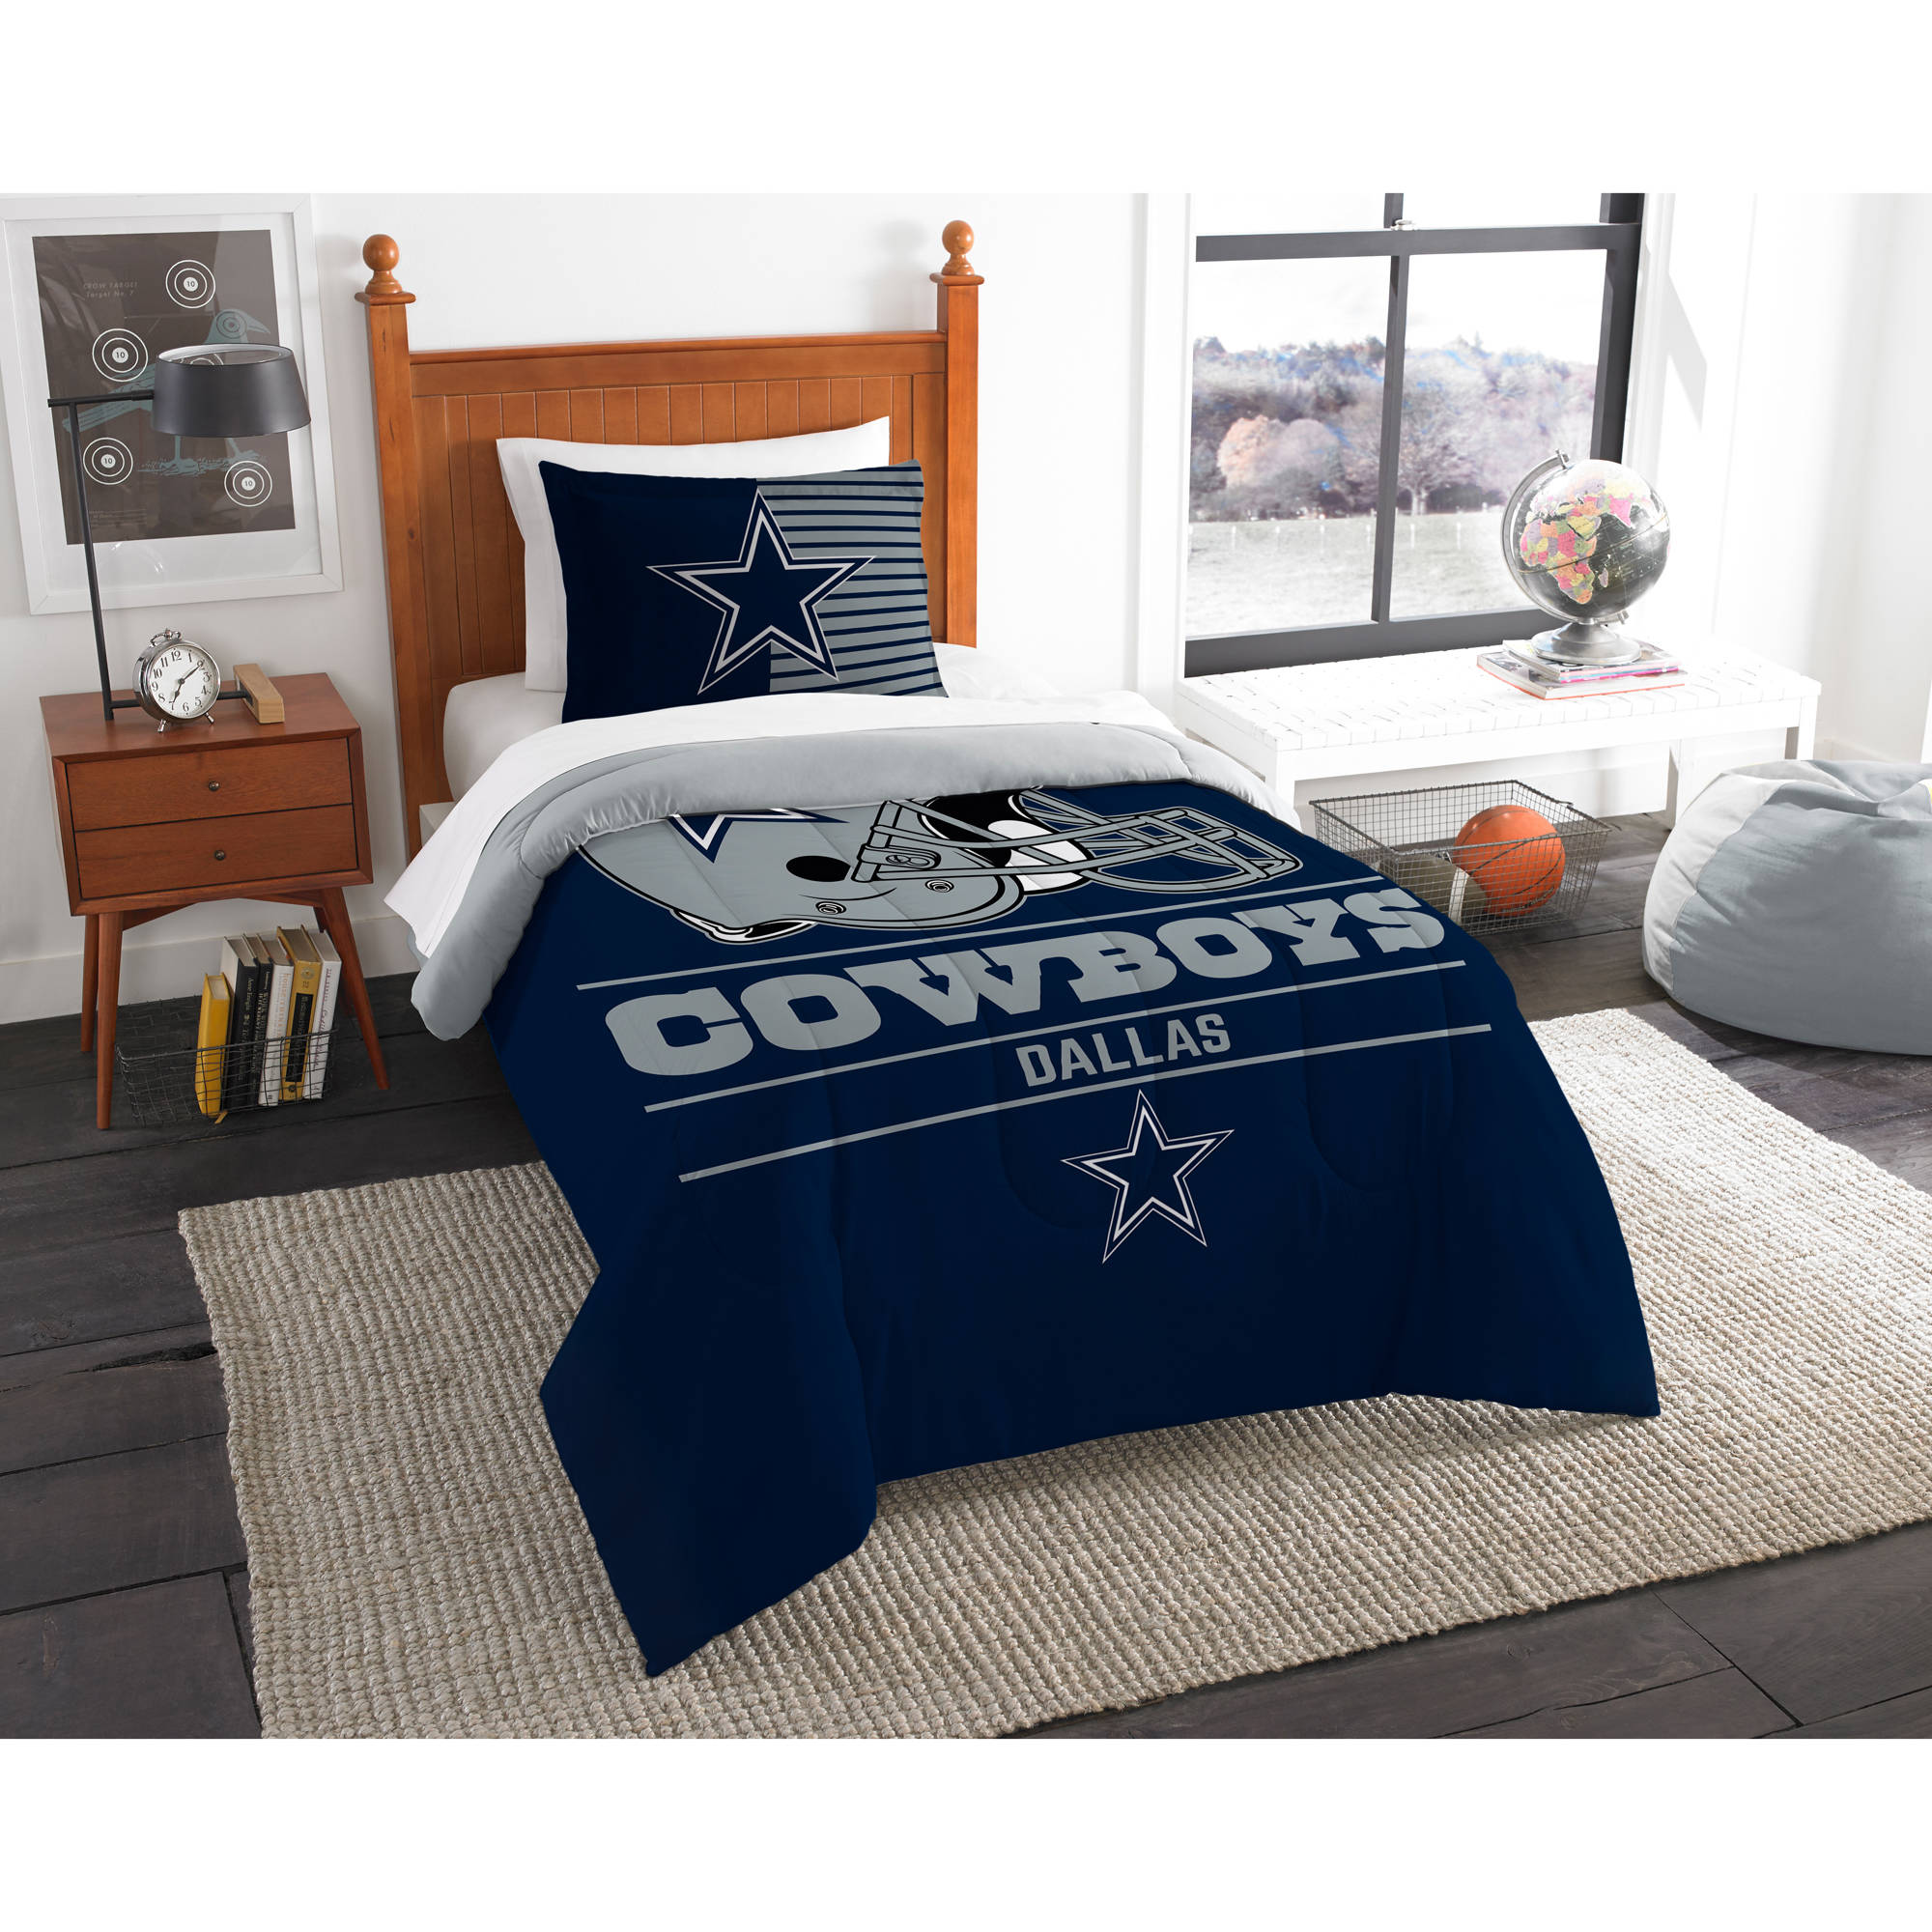 Nfl bedding for boys - Comforters Comforter Sets